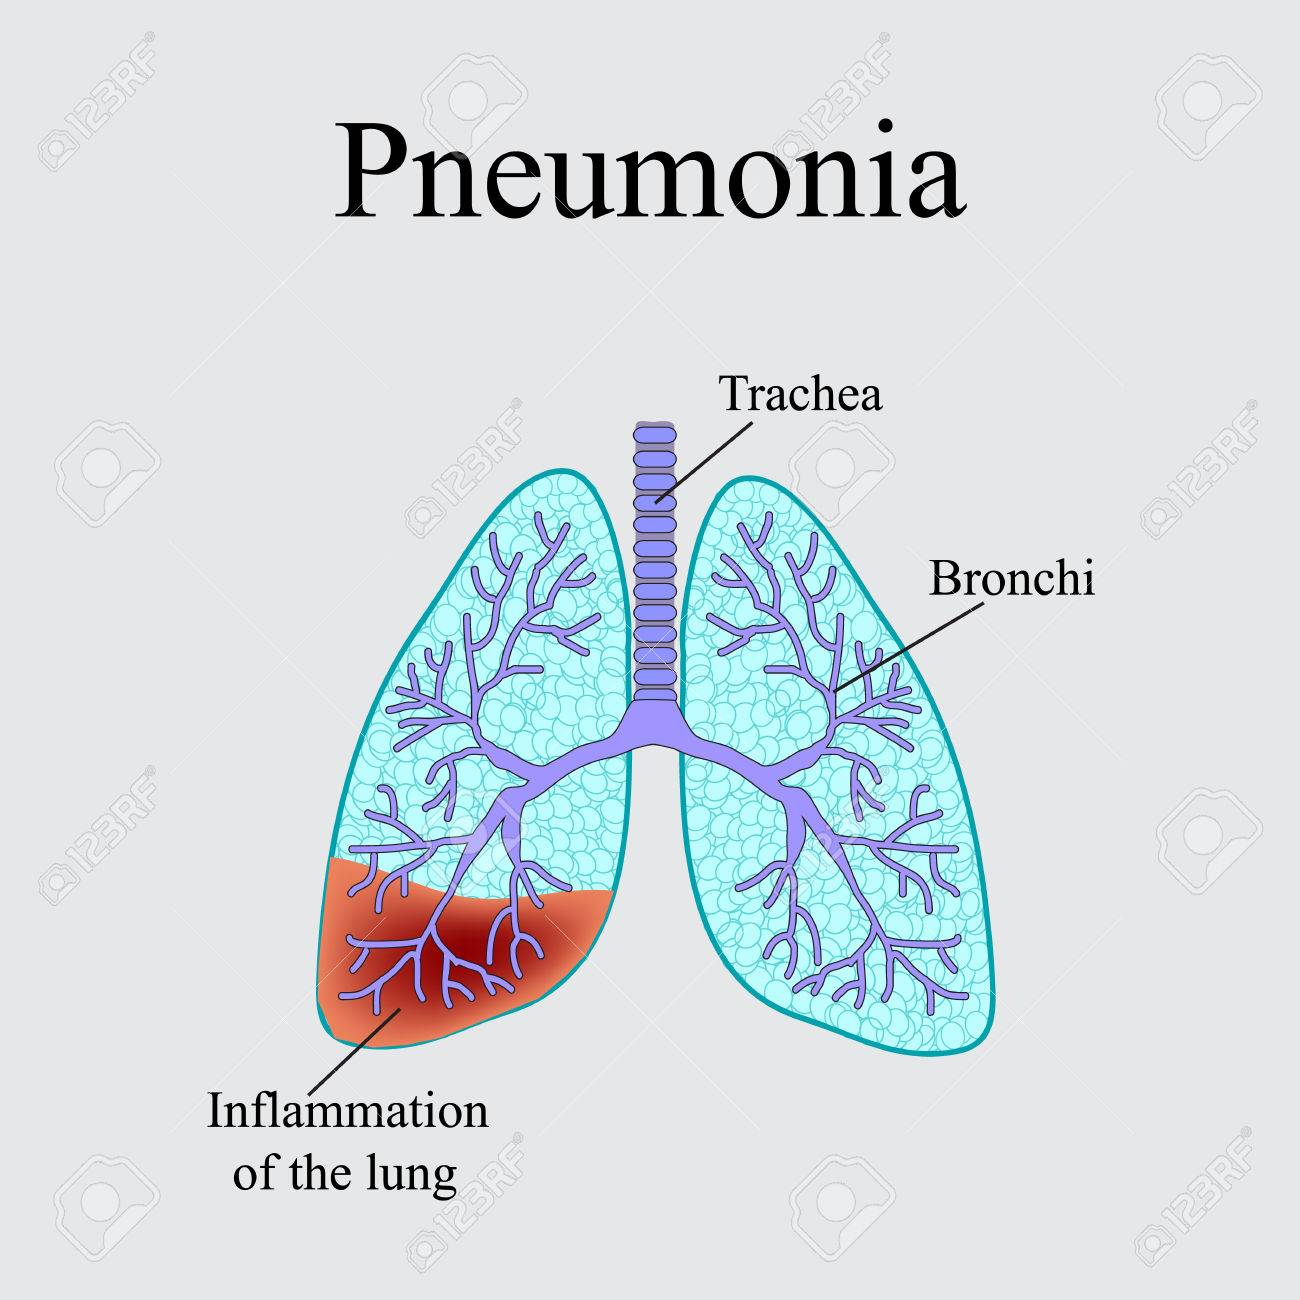 Pneumonia The Anatomical Structure Of The Human Lung Vector